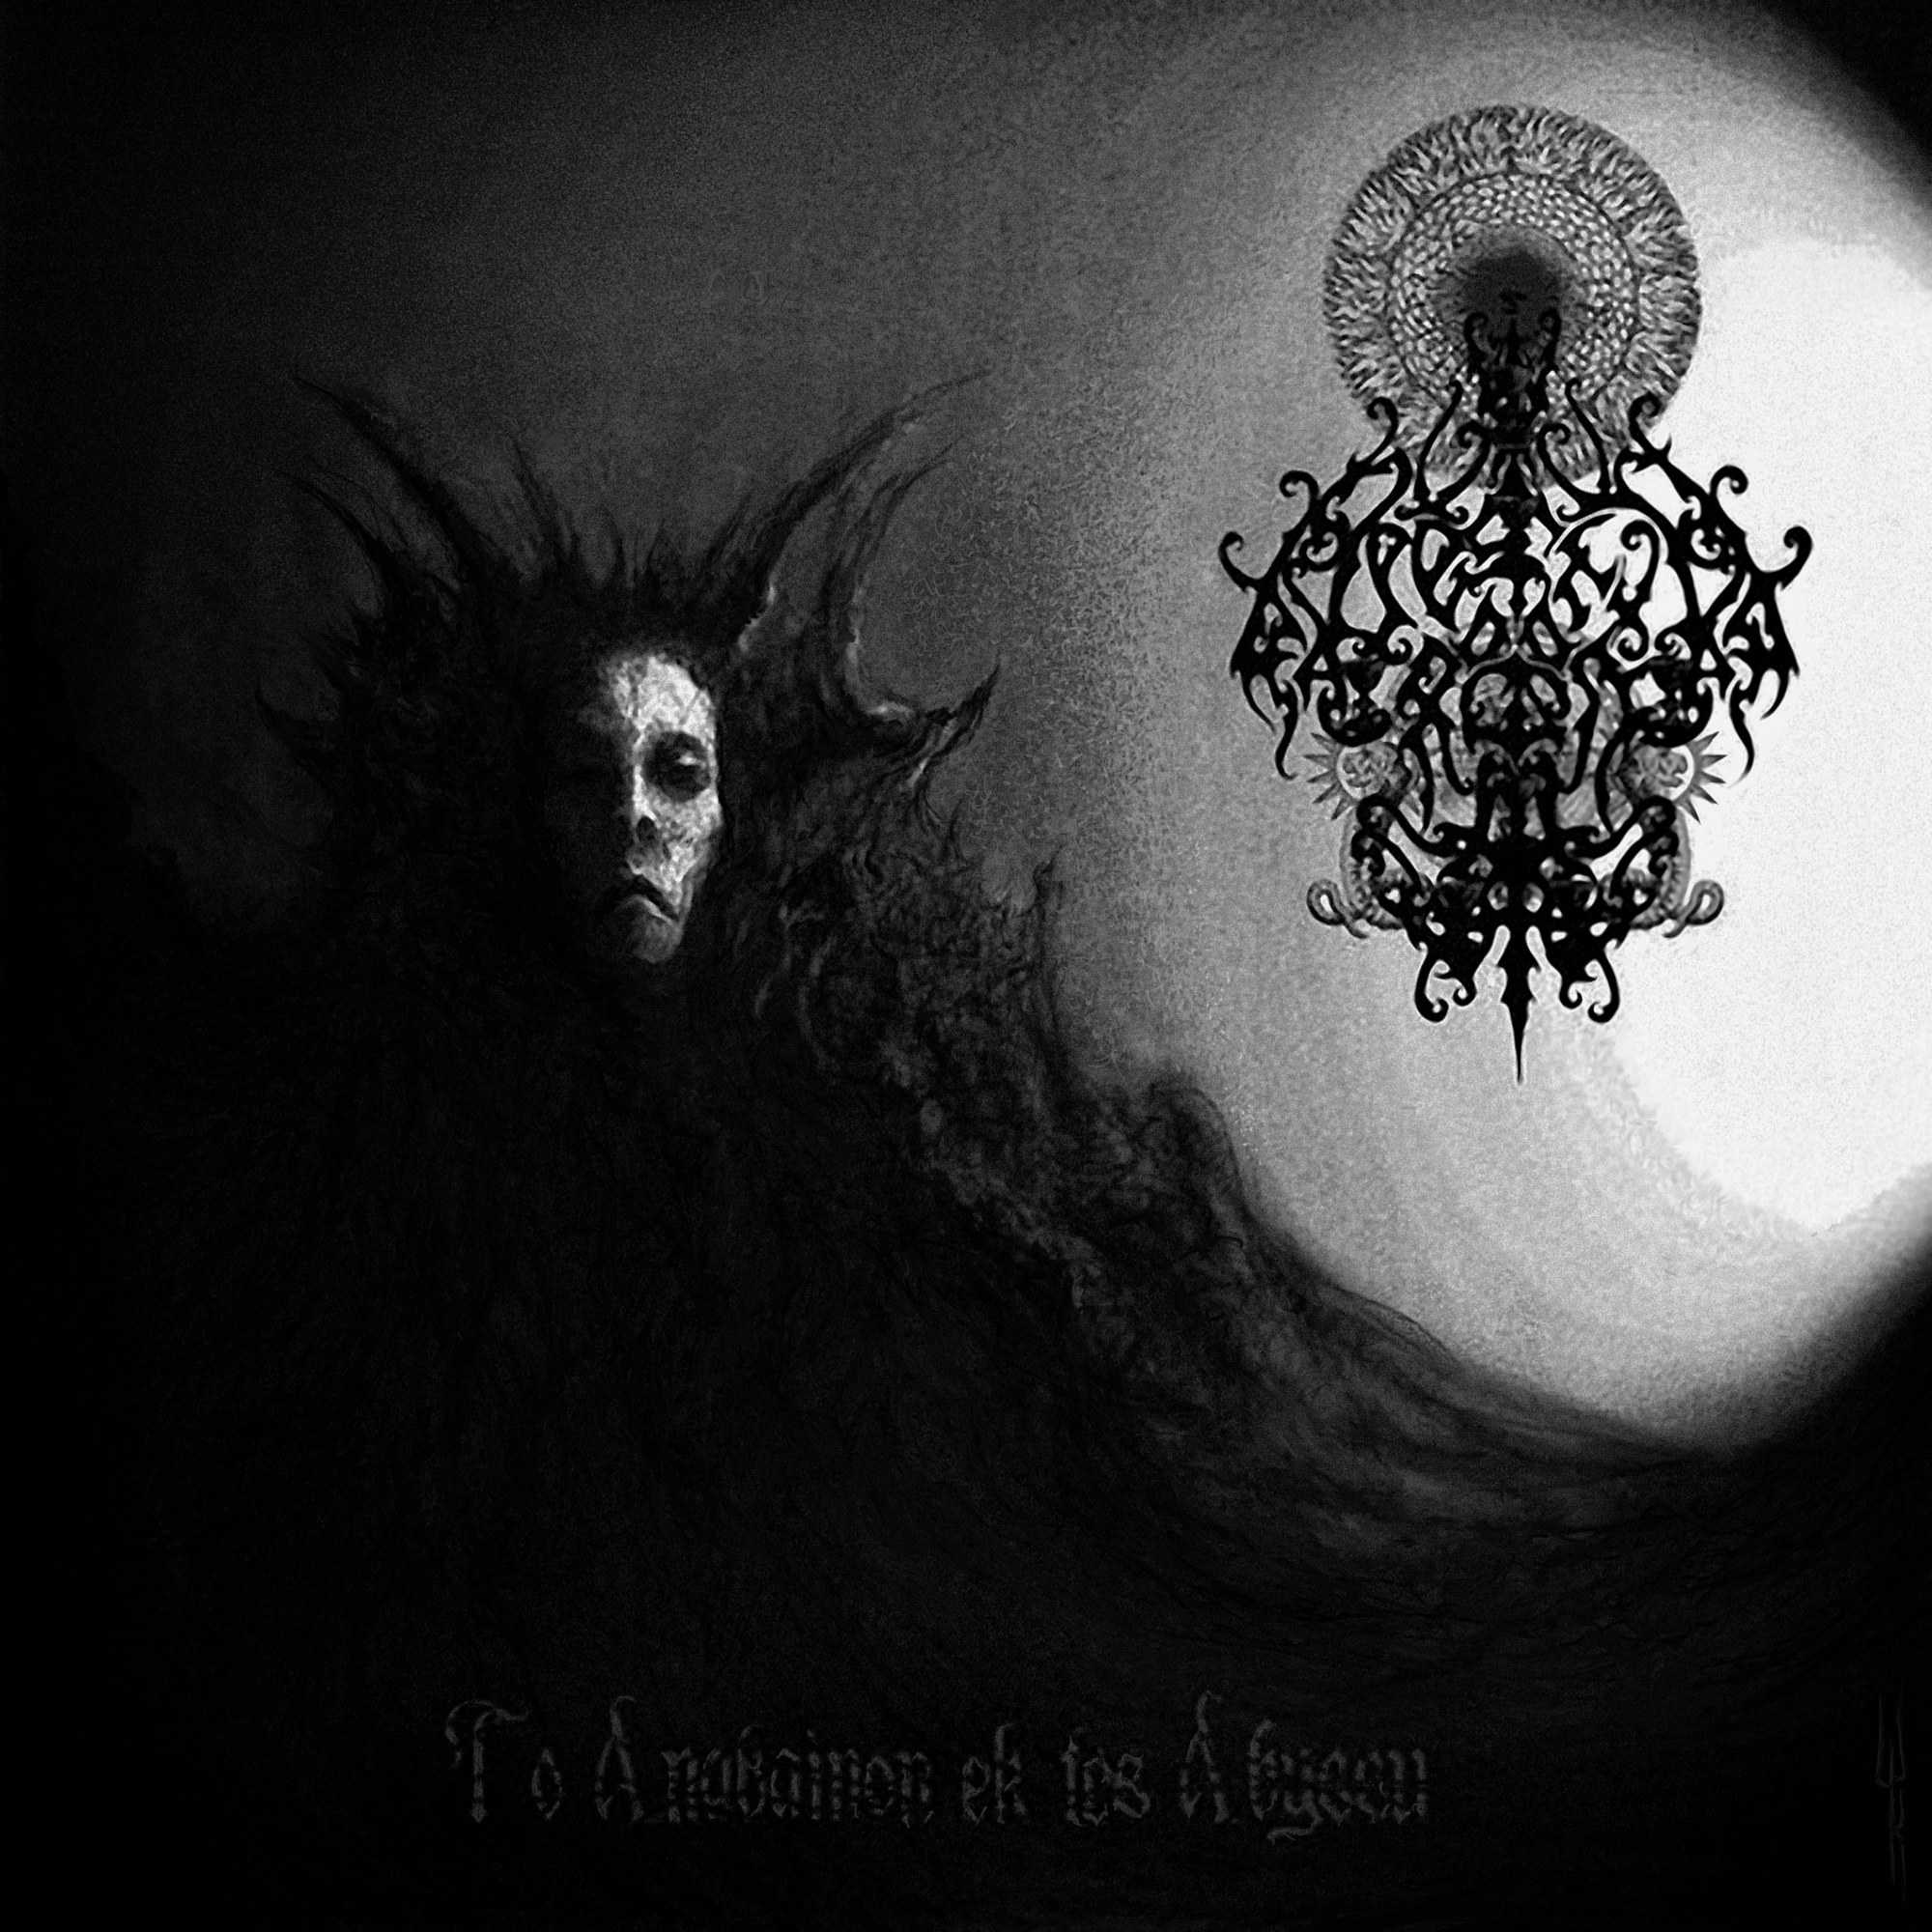 Review for Bestia Arcana - To Anabainon Ek Tes Abyssu